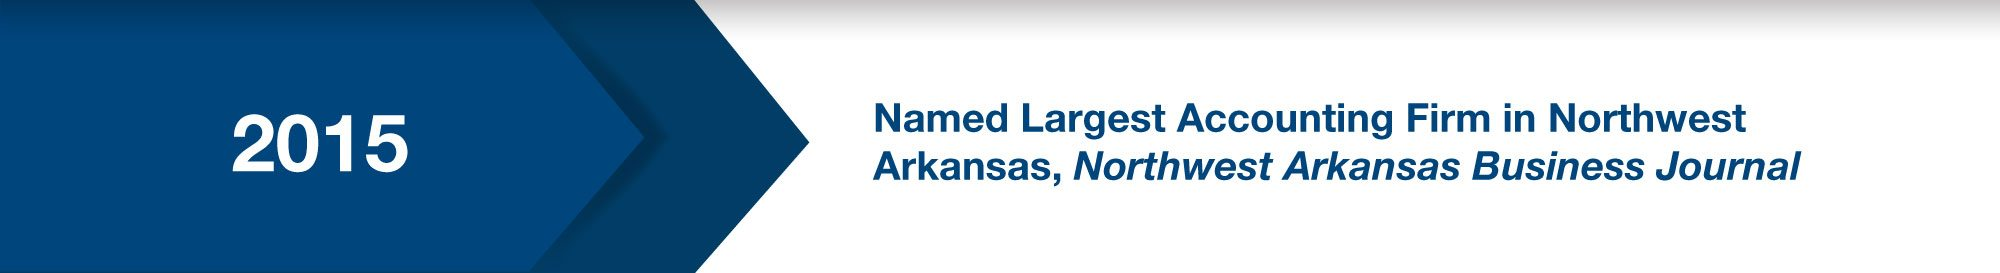 Named Largest Accounting Firm in Northwest Arkansas, Northwest Arkansas Business Journal (2015)